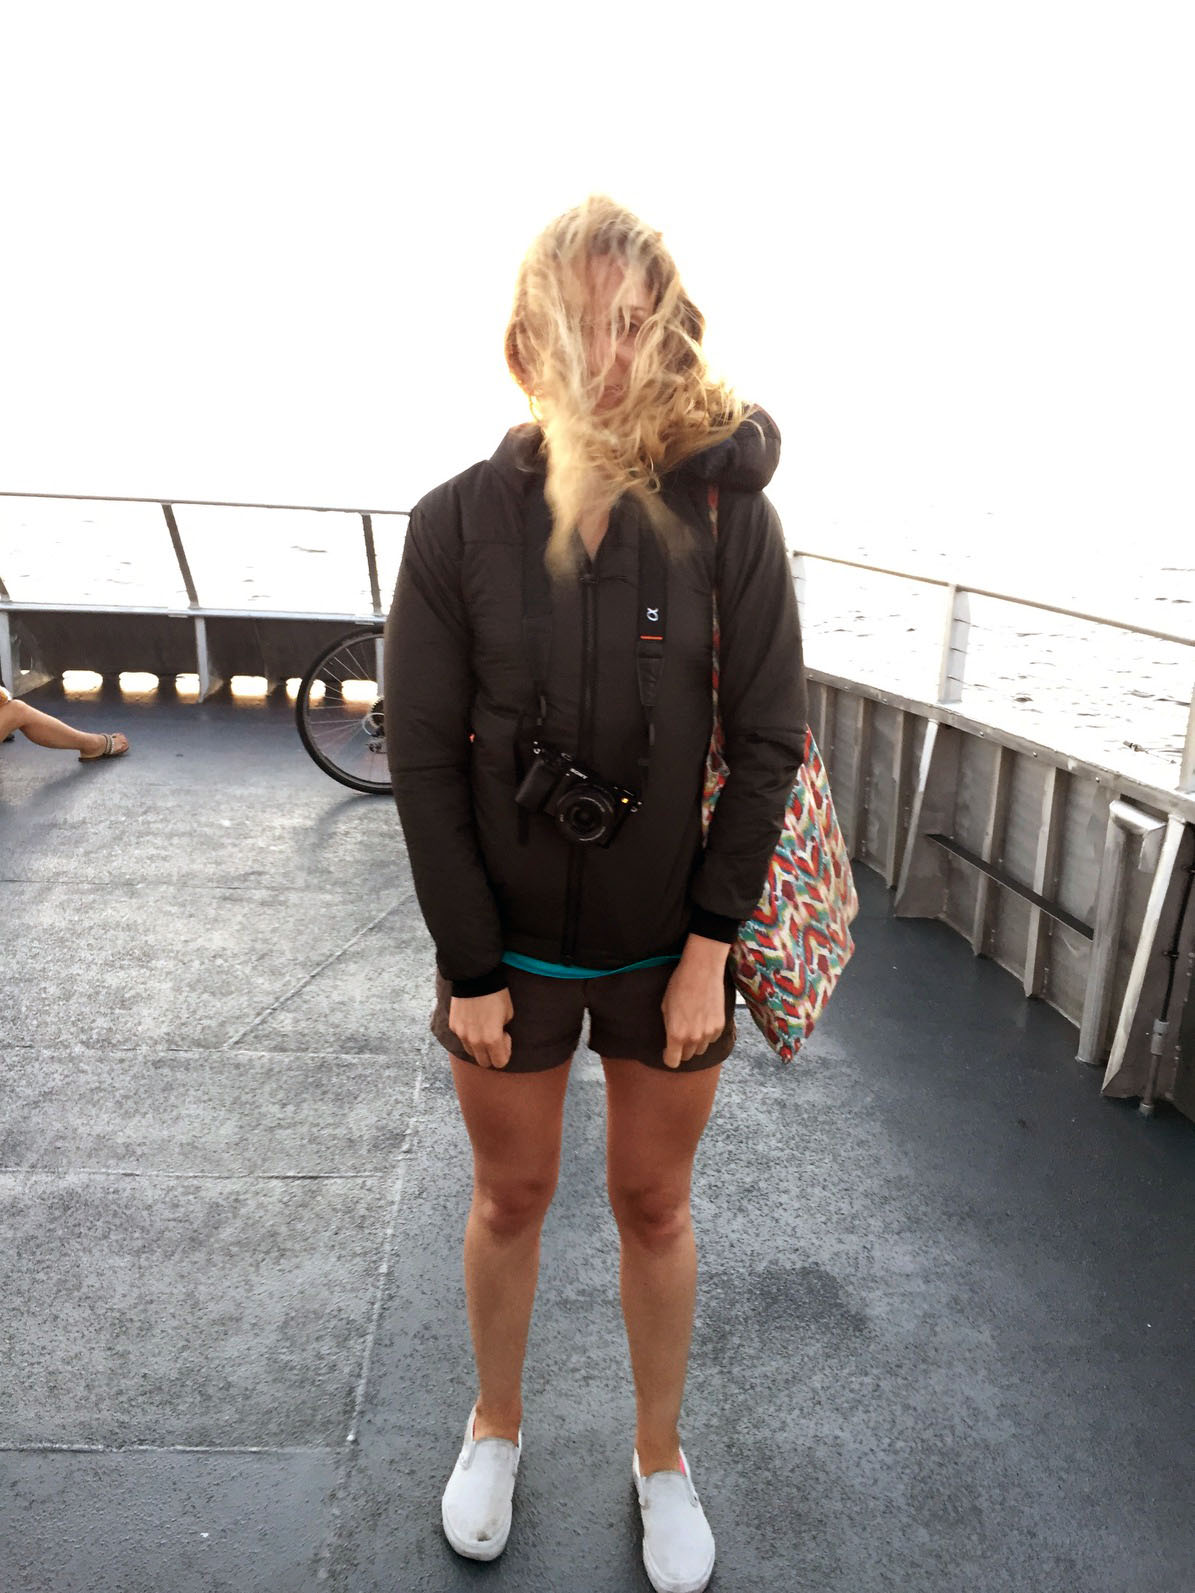 Warning: The ferry gets pretty windy.